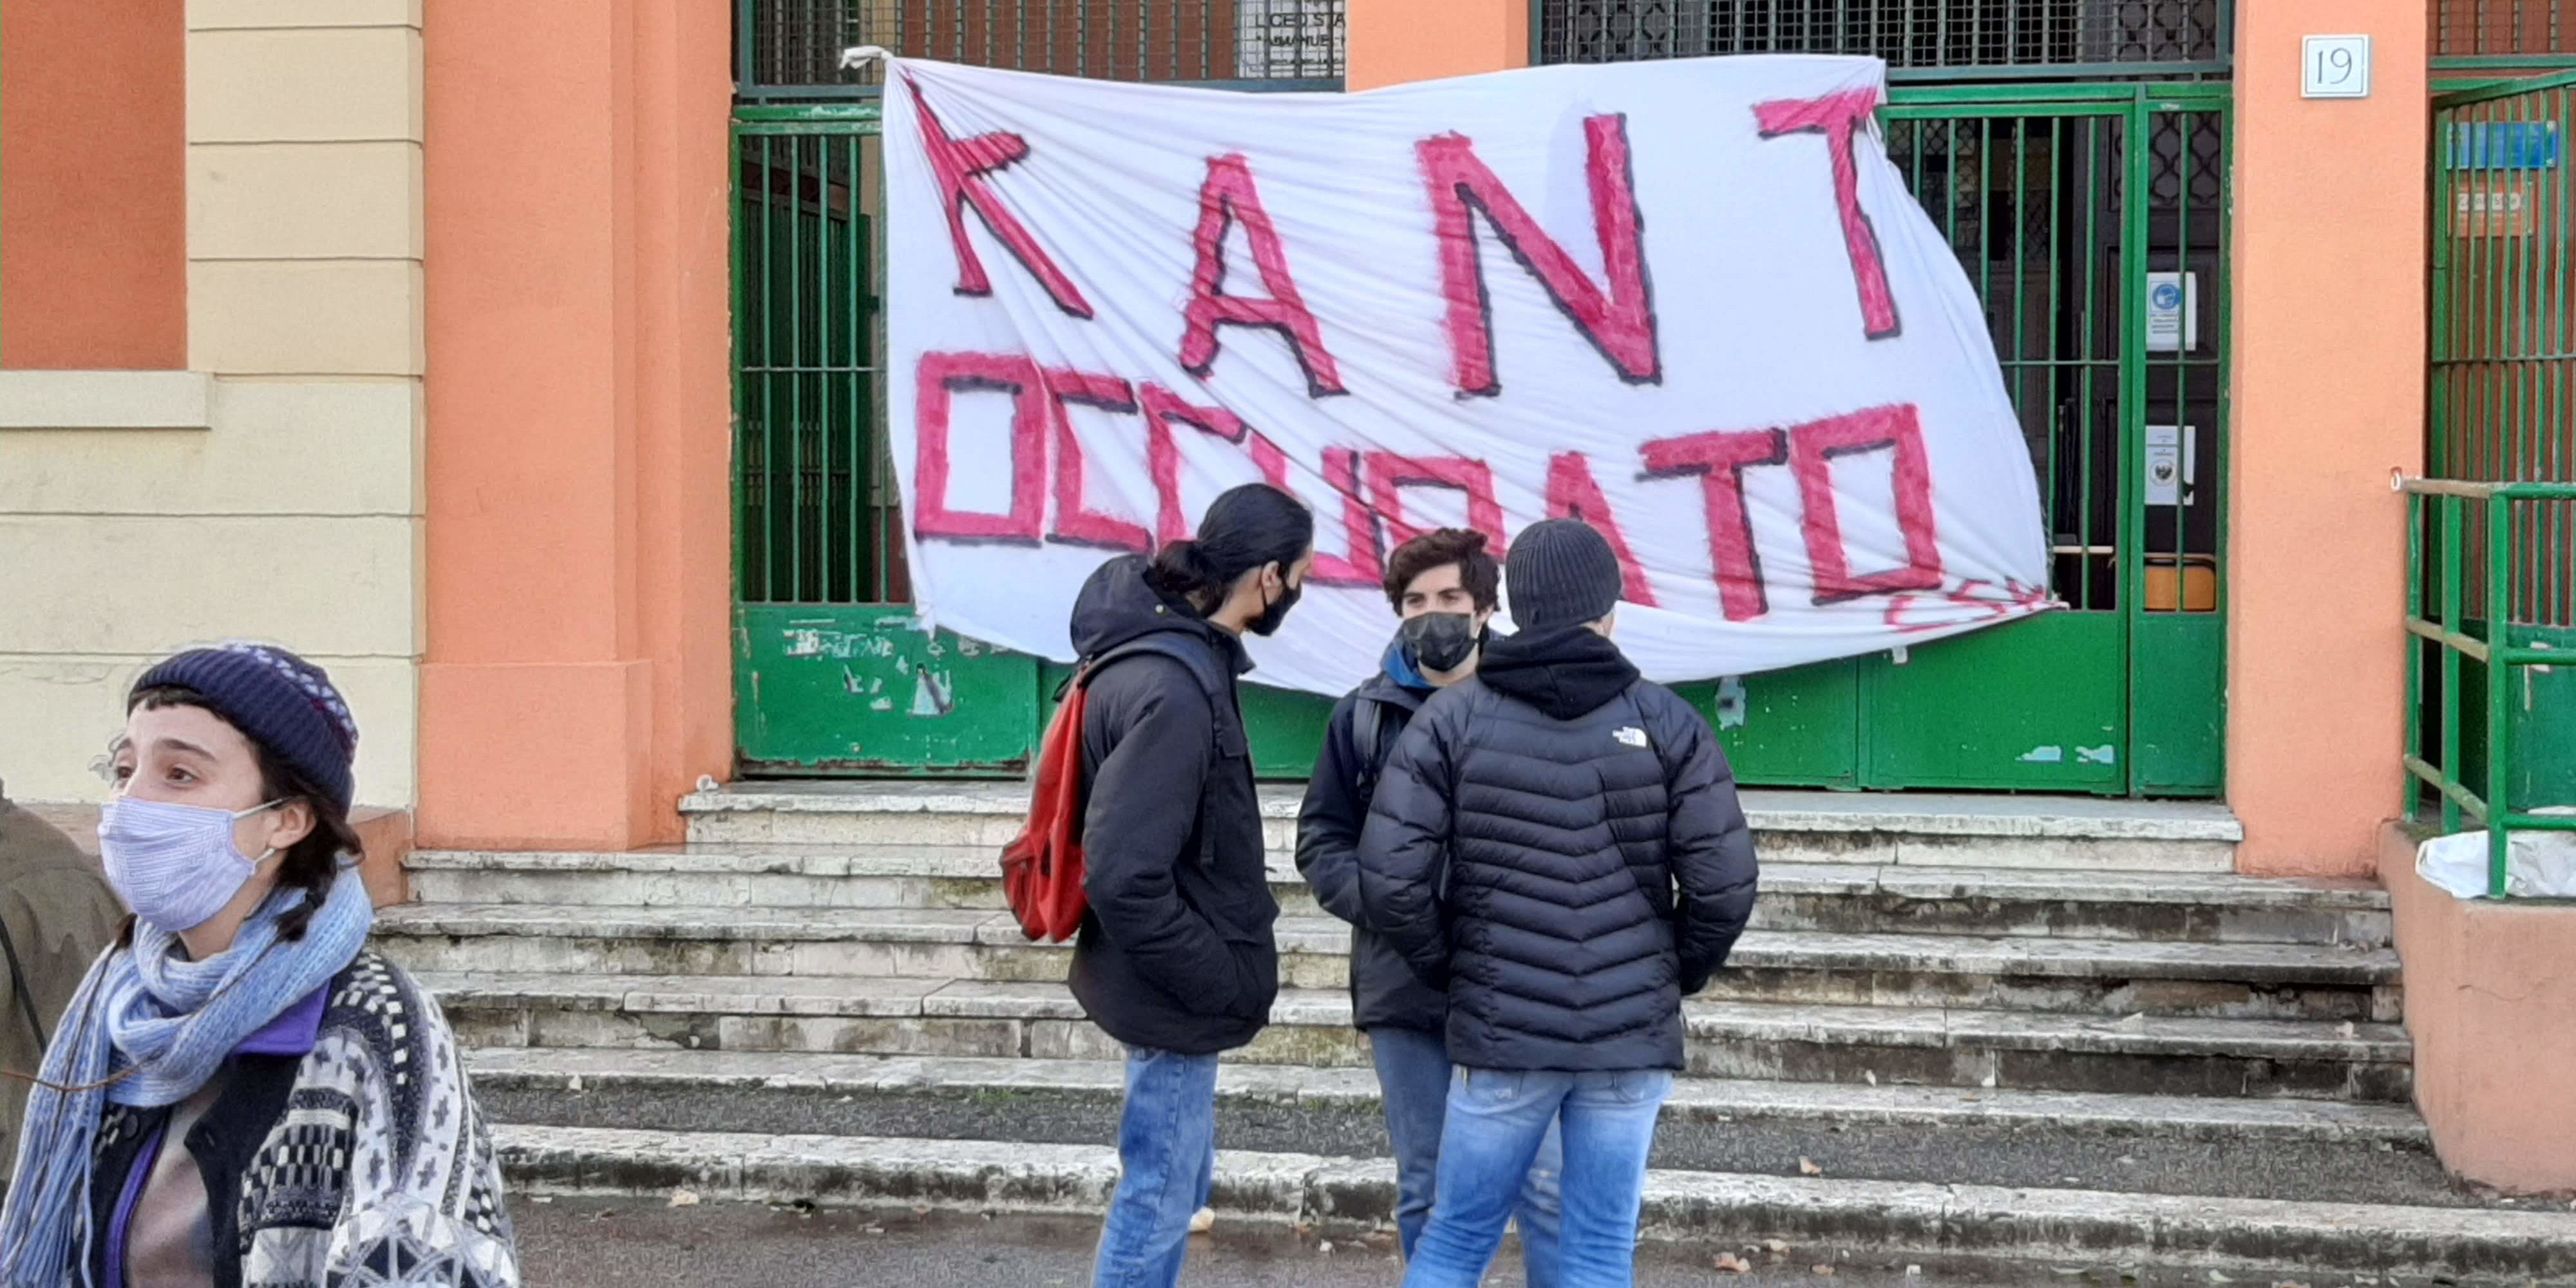 roma kant occupato